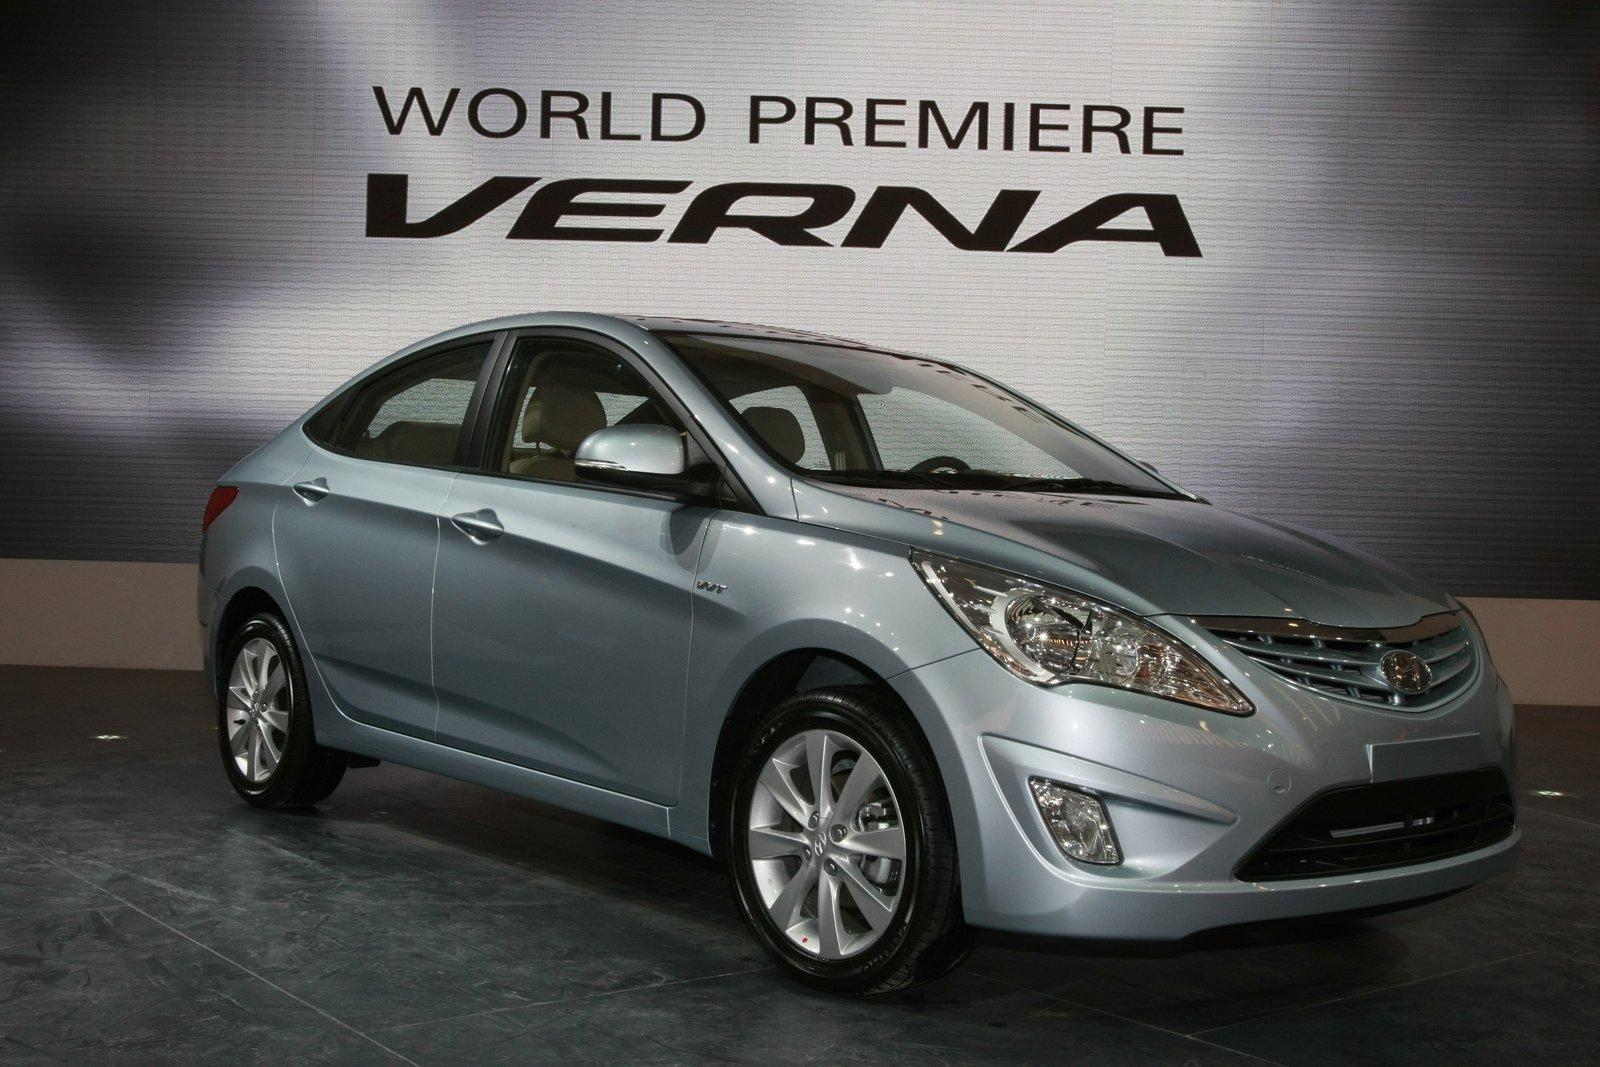 Hyundai Verna / Accent 2010 photo 58913 pictures at high resolution